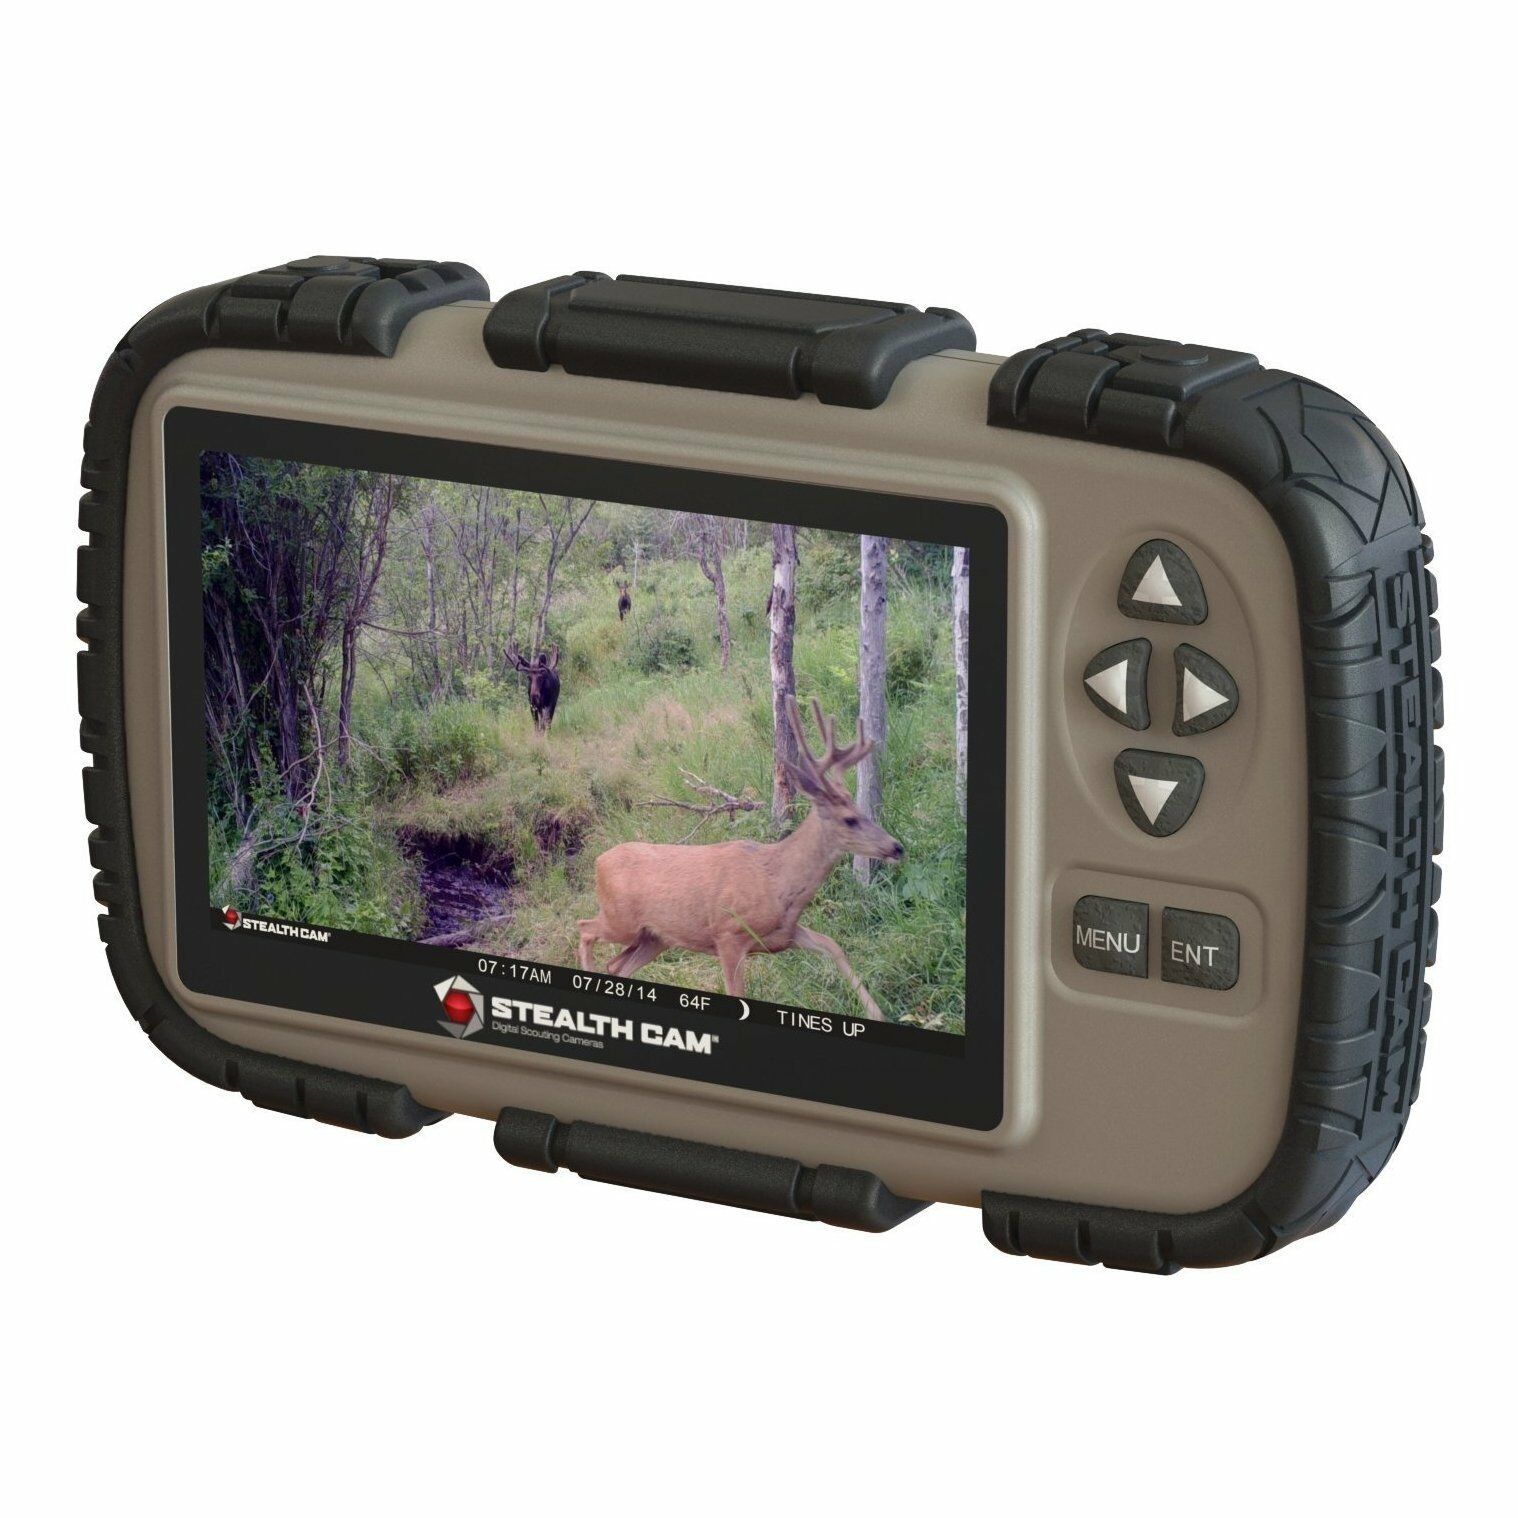 Stealth Cam CRV43 4.3  LCD Screen Game Photo Viewer & SD Card Reader for Hunting